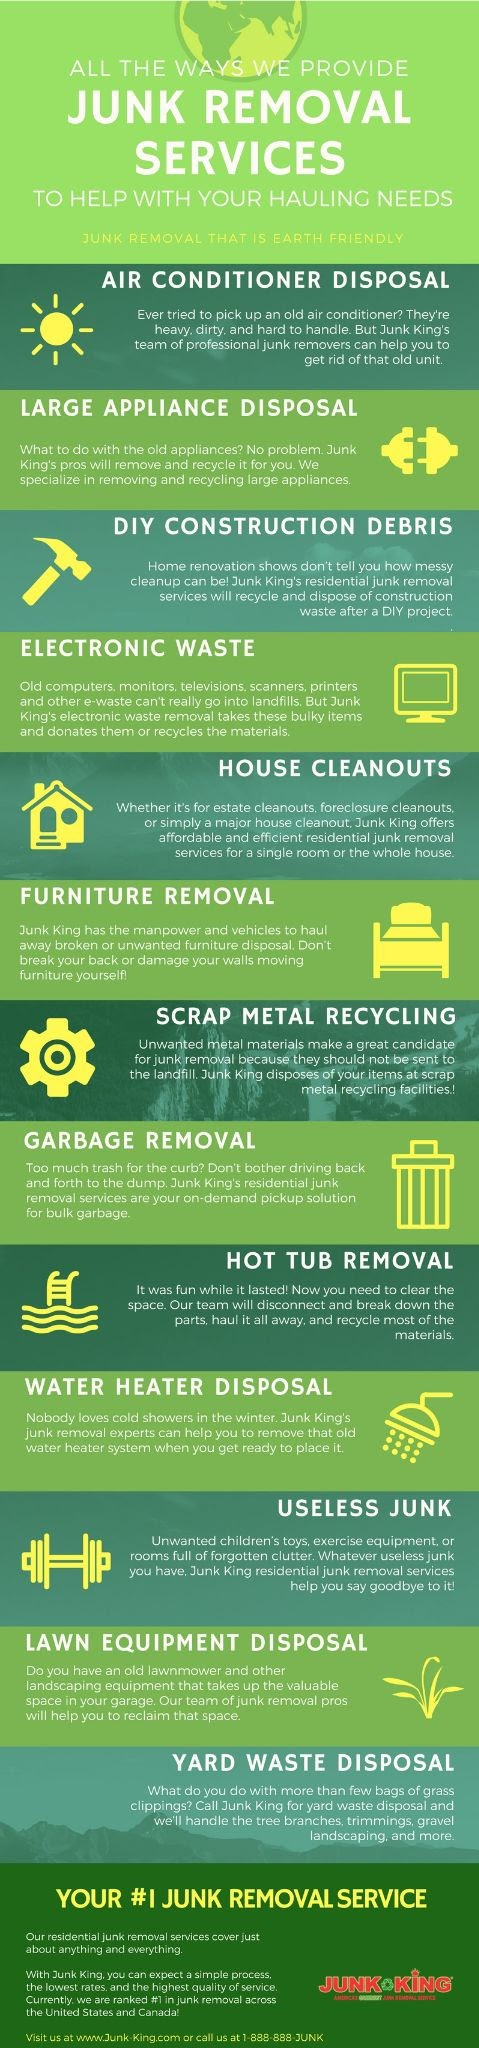 Junk Removal Infographic